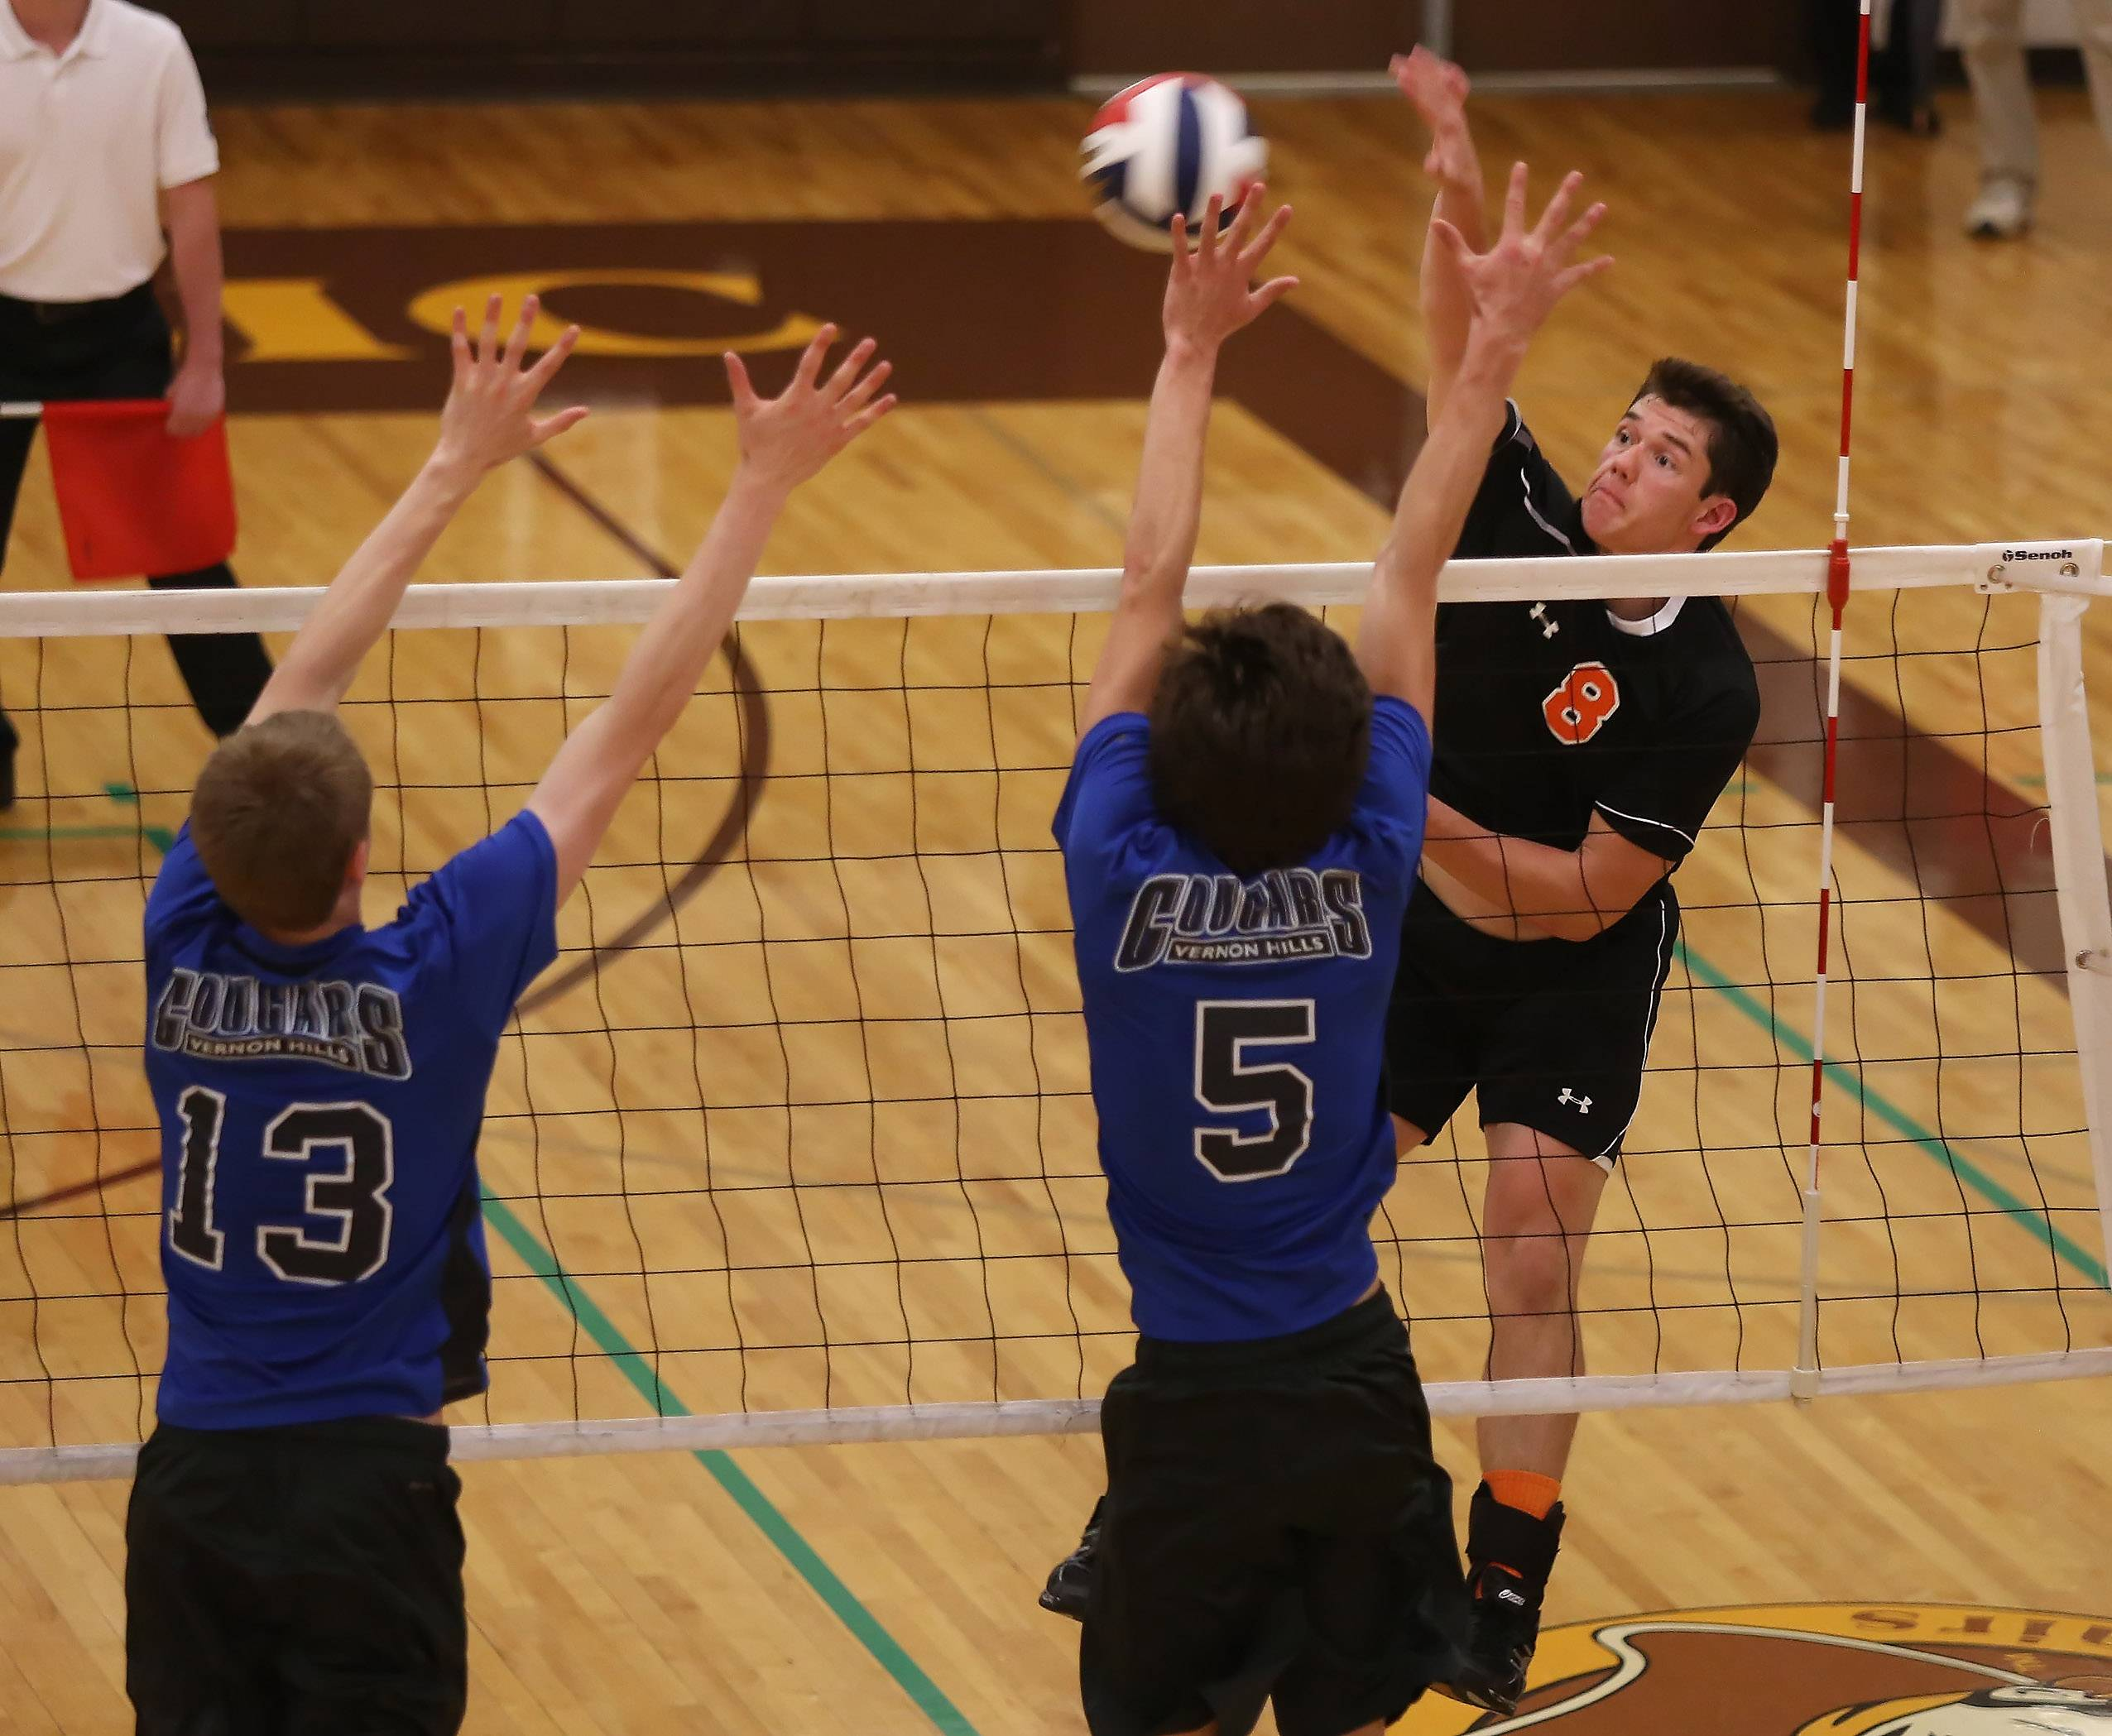 Libertyville hitter Chris Akers attacks against Vernon Hills players Max Spiglanin and Tyler Small, right, during regional semifinal play Tuesday at Carmel.